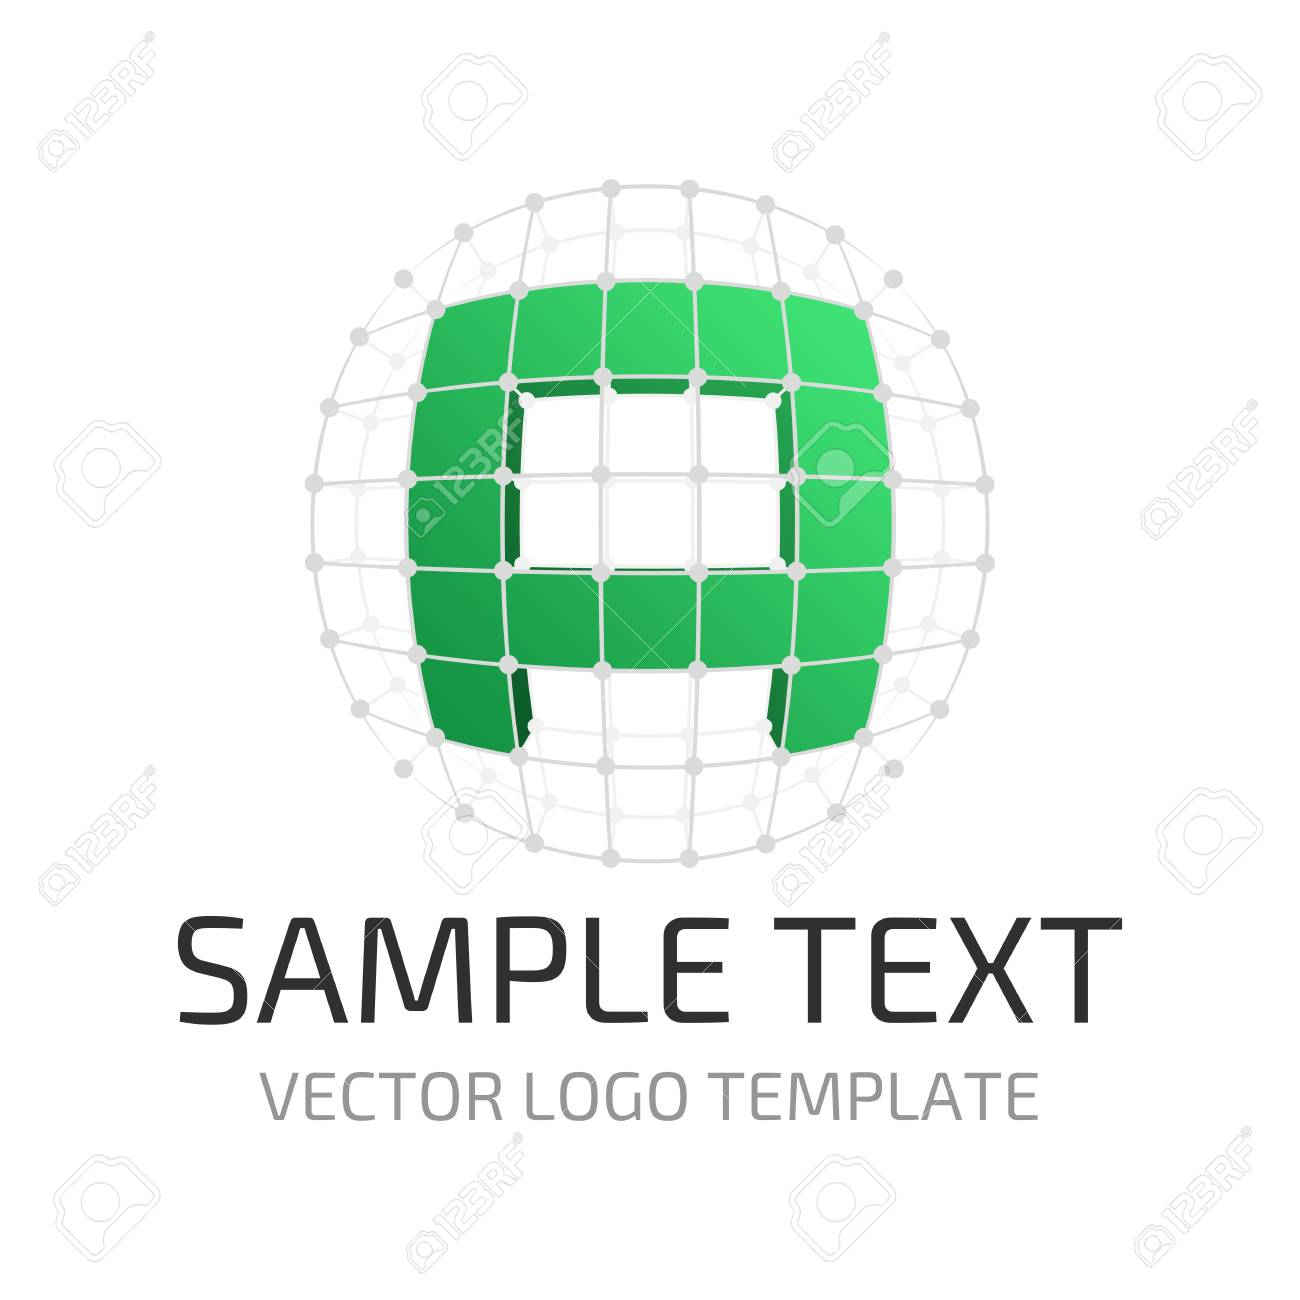 vector logo template letter a icon stylized letter a in the